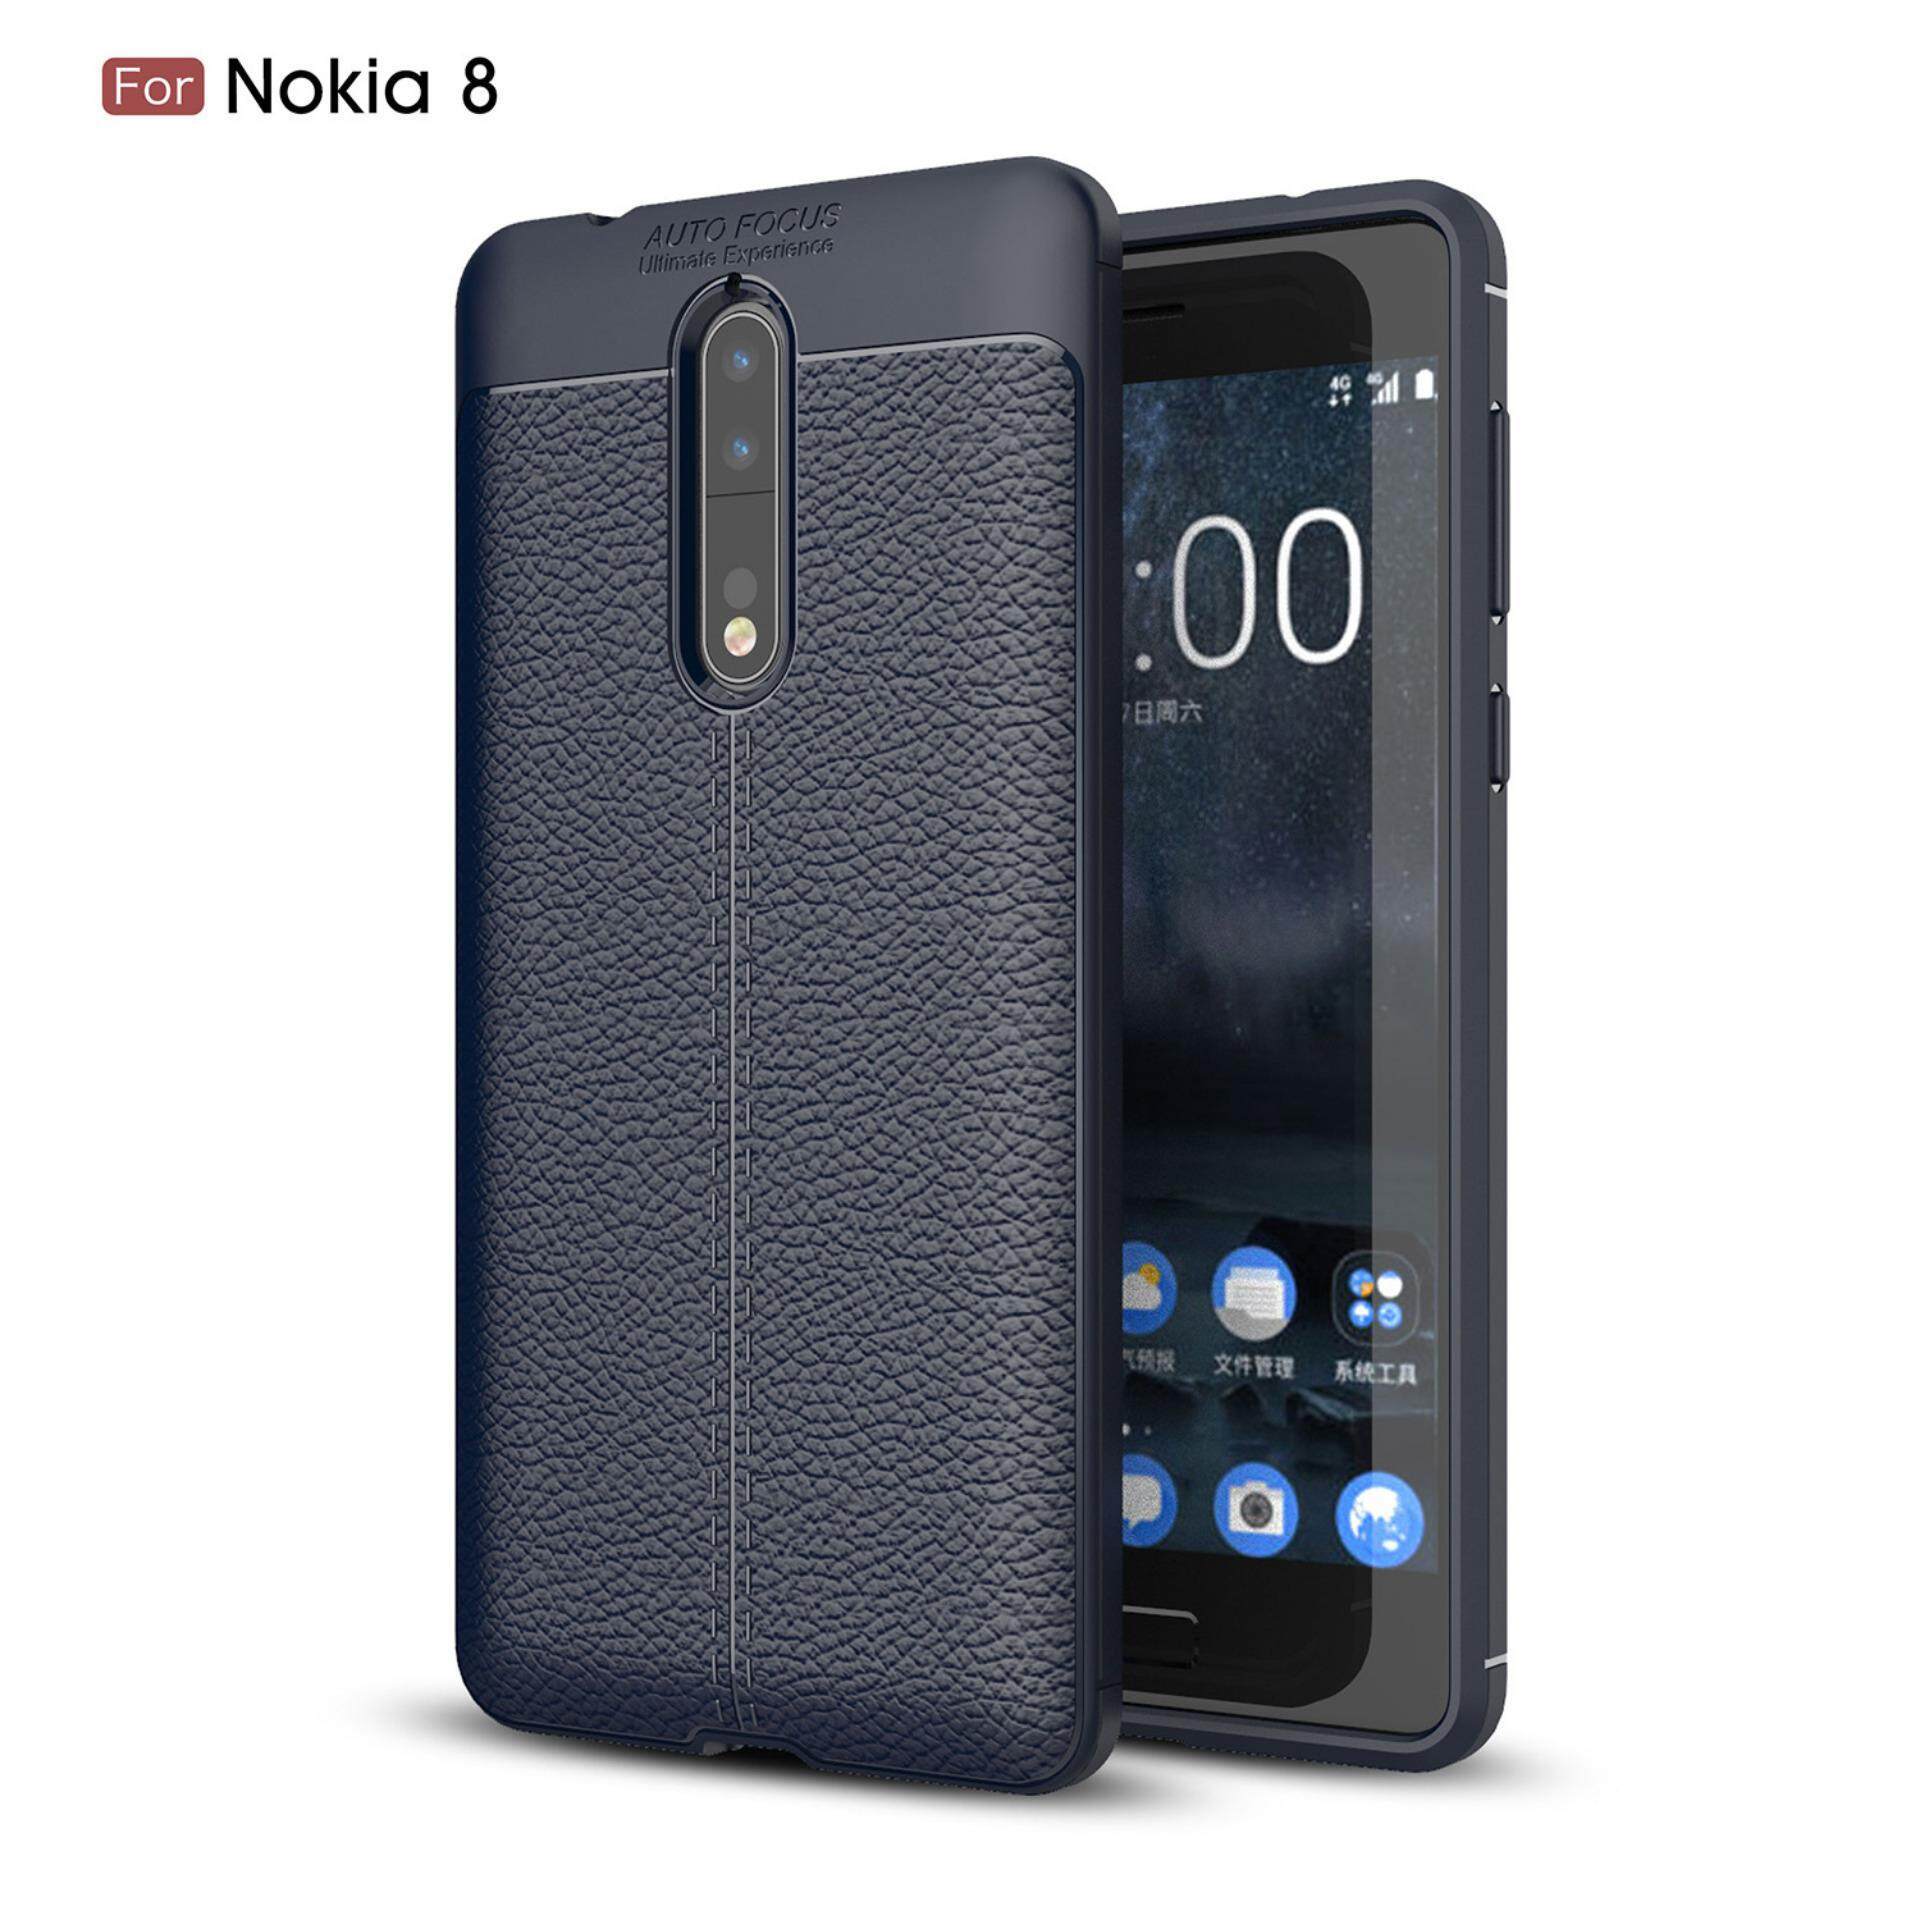 For Nokia 8 Case Litchi Pattern Leather Soft TPU Silicone Shockproof Protective Back Cover - intl